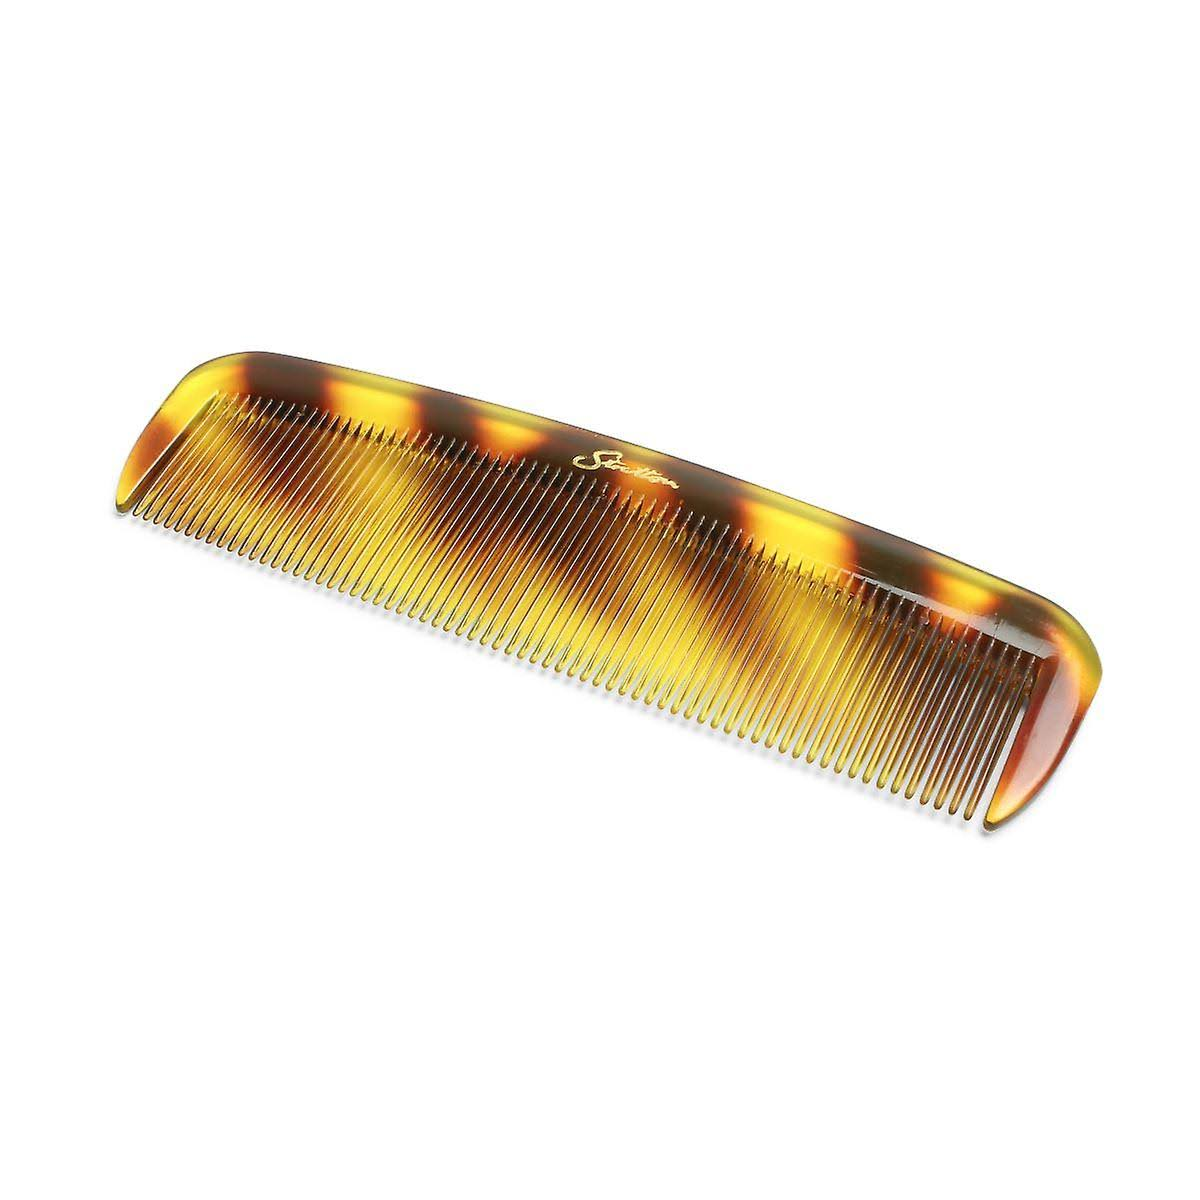 Stratton Hair Comb, Mayfair Design